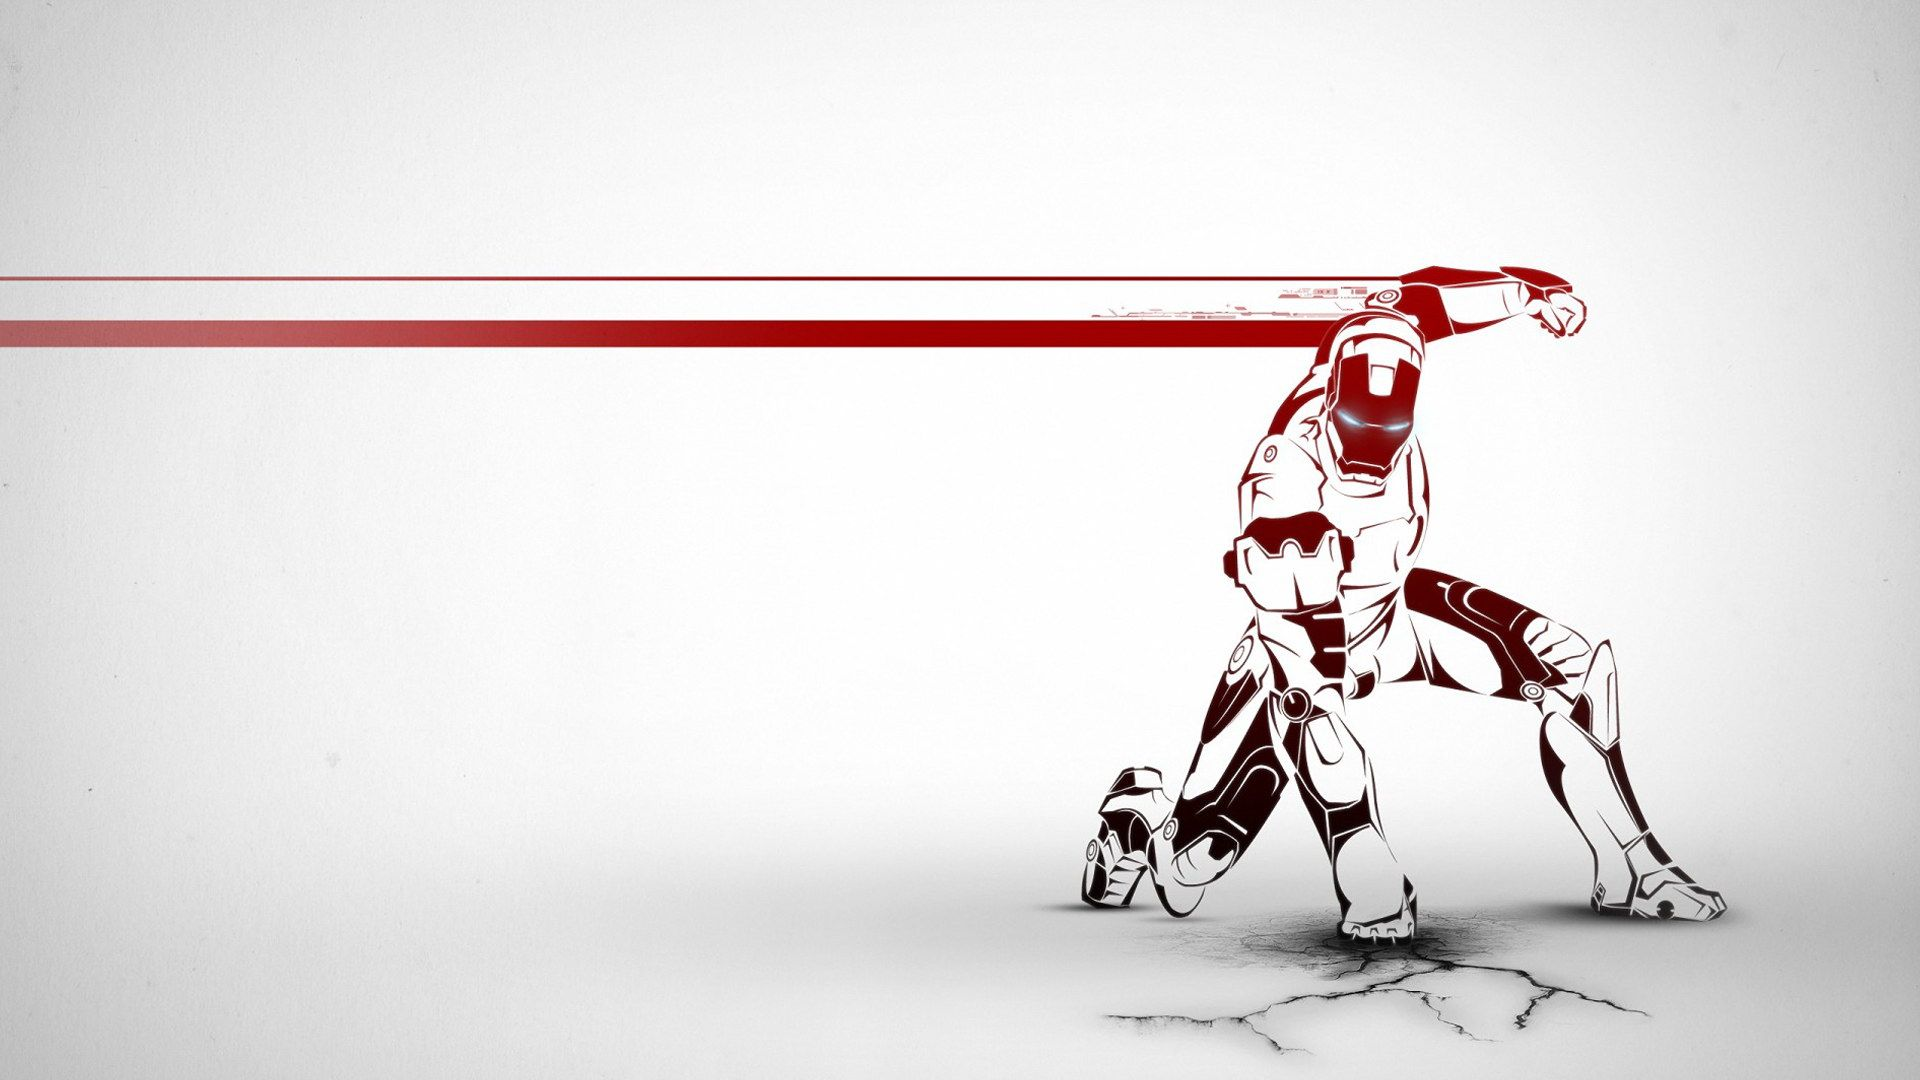 Iron Man Wallpaper Desktop